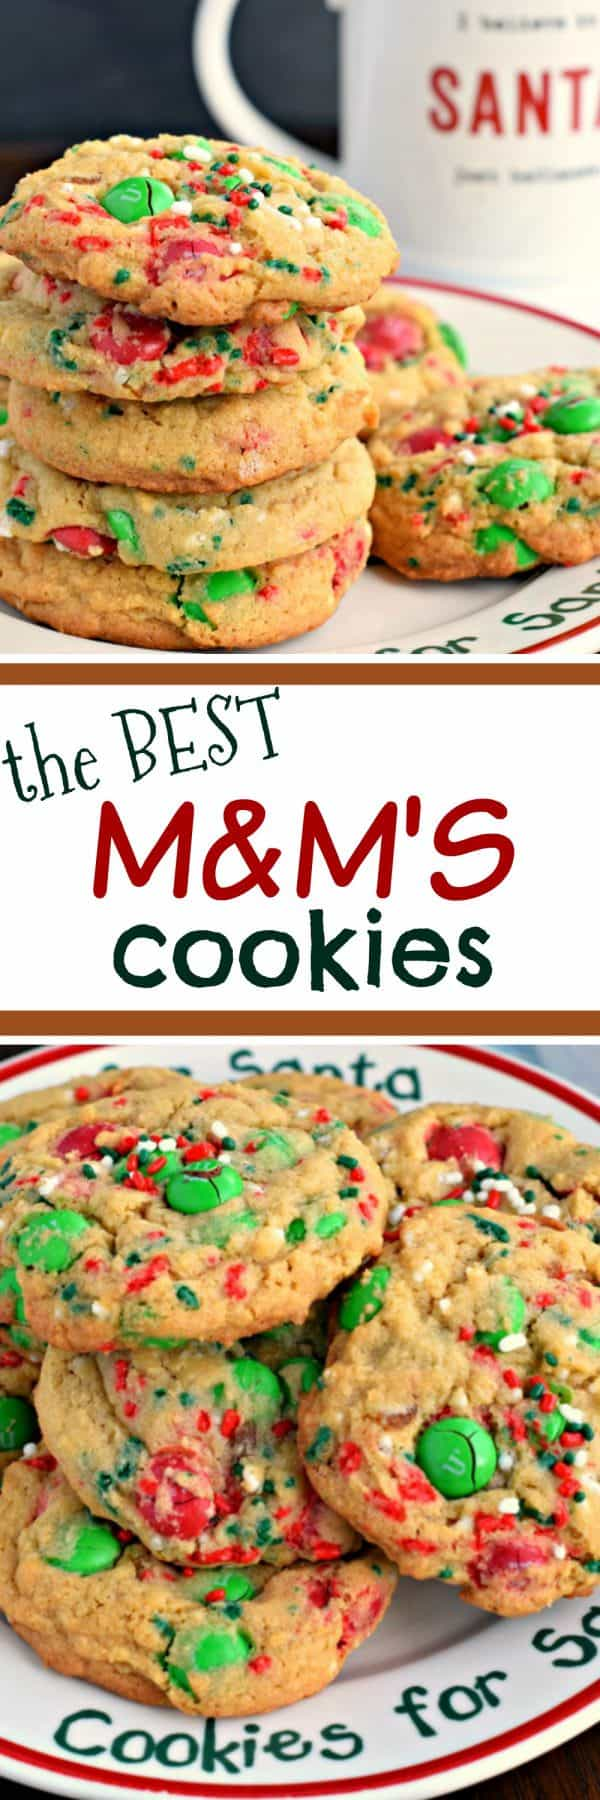 If you're looking for The Best M&M's Cookies, you've arrived! The secret to soft, chewy cookies is pudding mix!